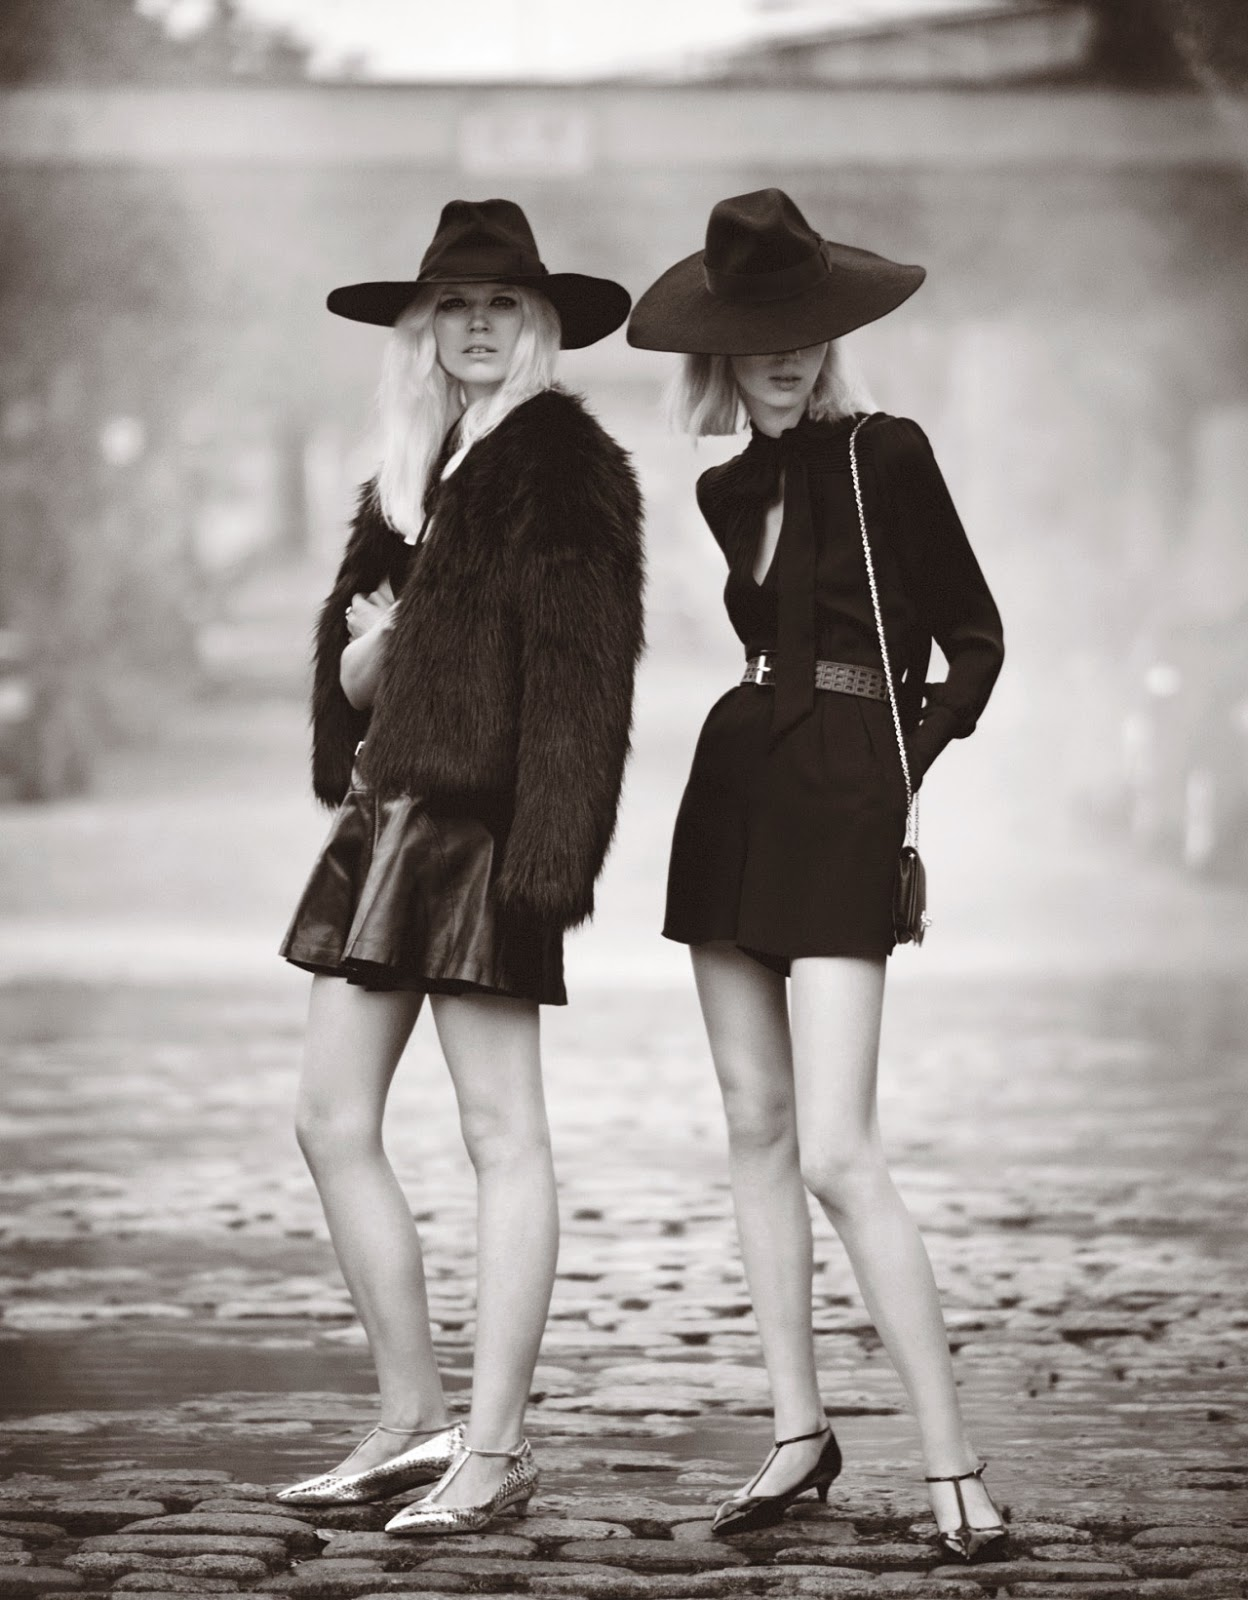 Ola Rudnicka and Esmeralda Seay-Reynolds by Boo George for W September 2014